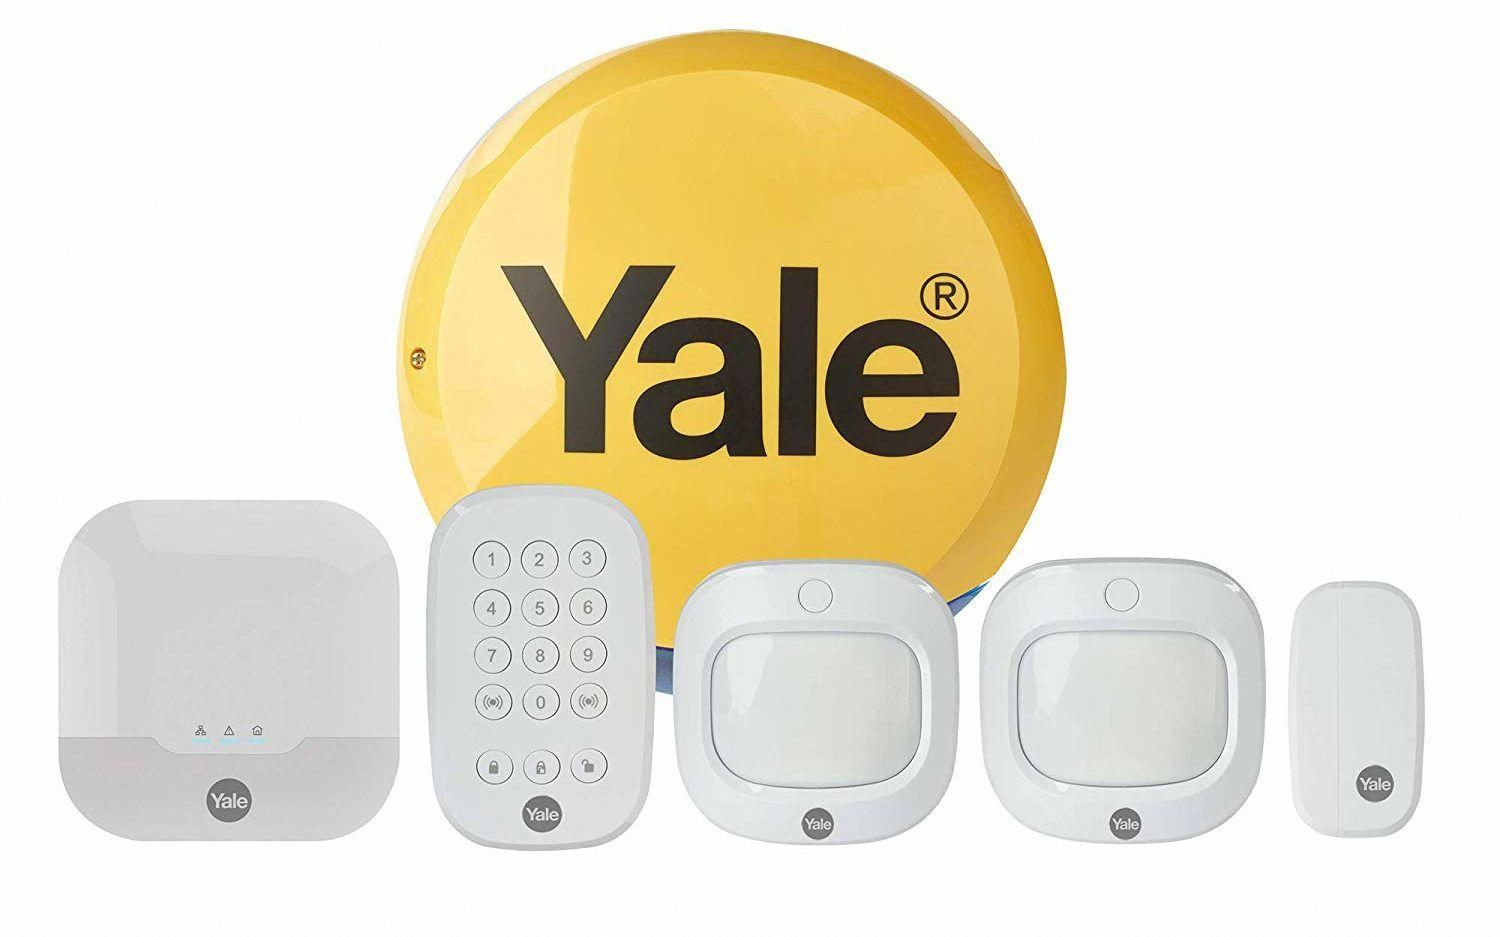 Yale Launches Sync Smart Home Alarm An Alexa Enabled Alarm That Integrates With Philips Hue Fo Home Security Systems Smart Home Security Alarm Systems For Home